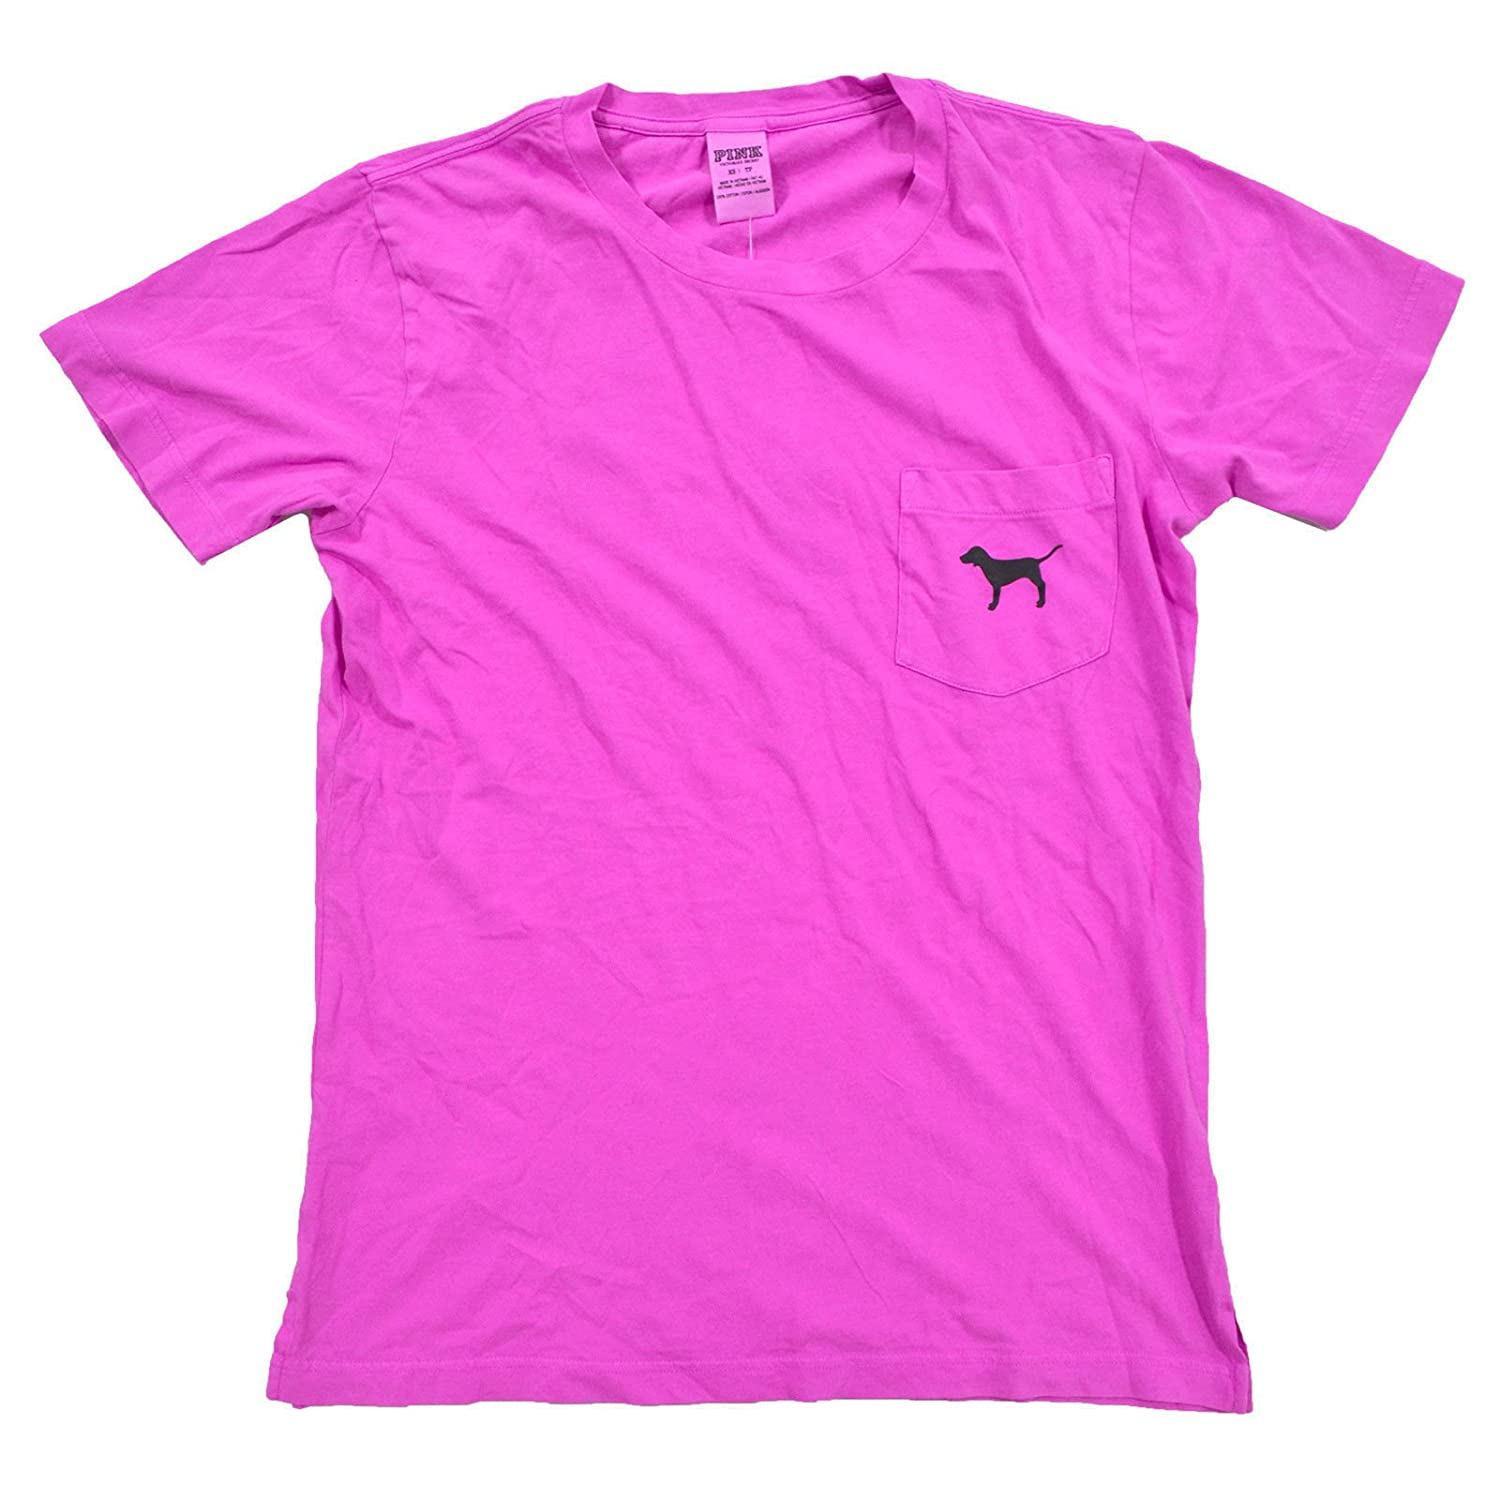 5d7dc685 Victoria's Secret Pink Crew Neck Short Sleeve Graphic T-Shirt (XS, Bright  Pink) at Amazon Women's Clothing store: